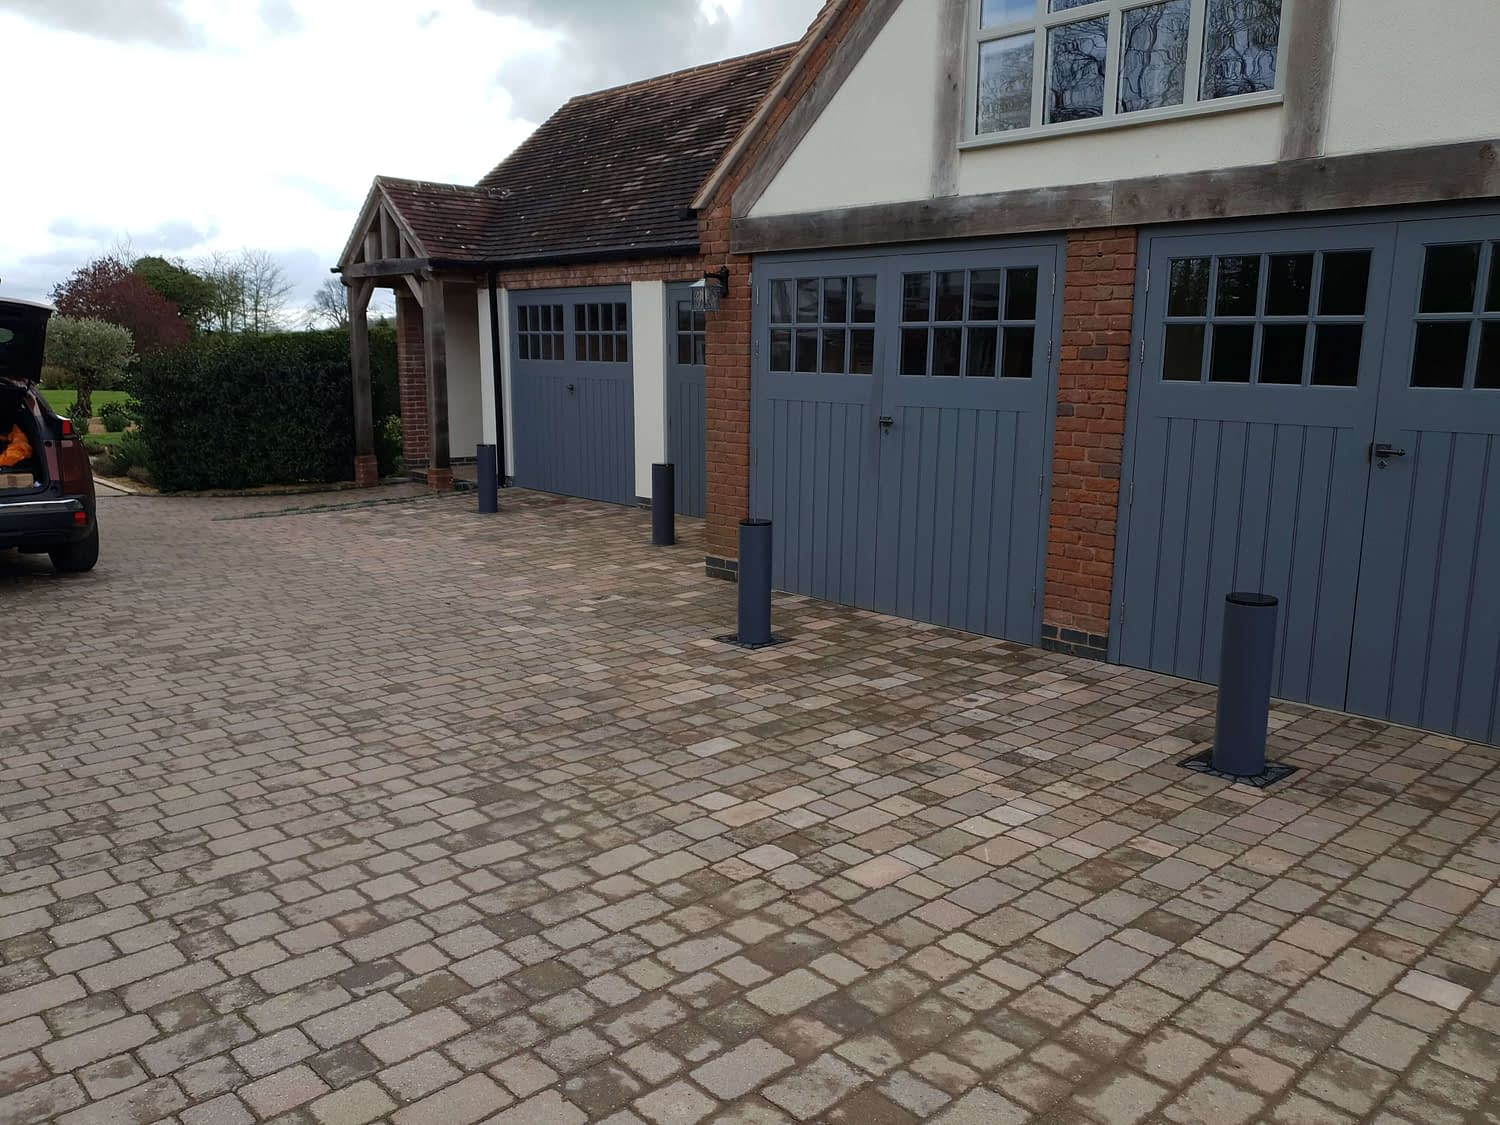 FOUR BFT SECURITY BOLLARDS INSTALLED IN FRONT OF GARAGES TO PREVENT CAR THEFT